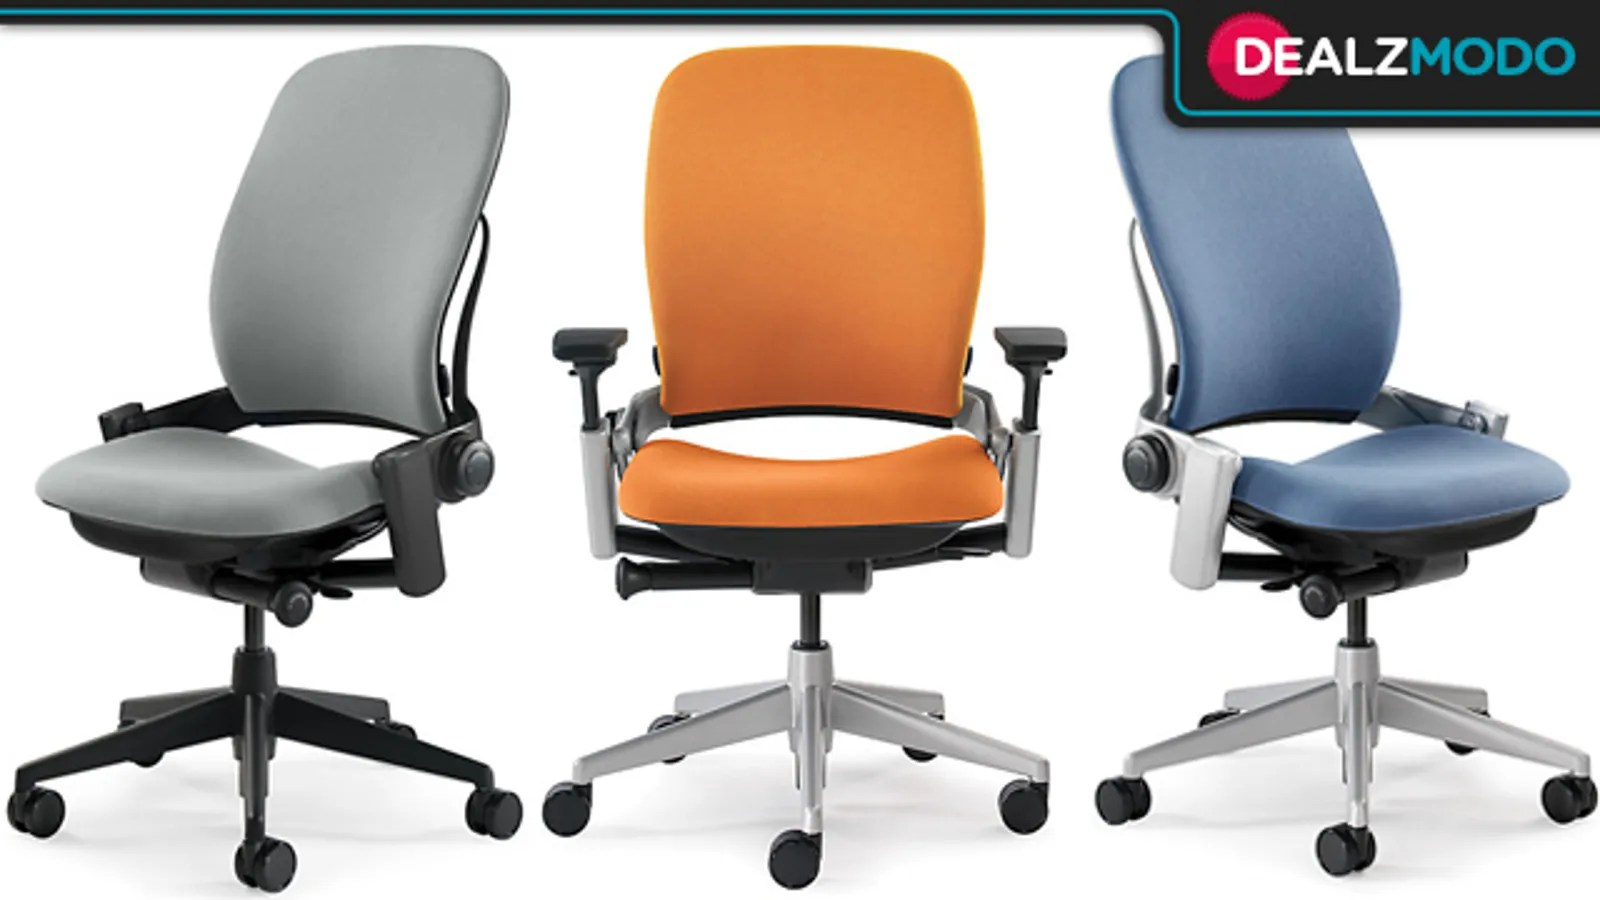 office chair deals gaming computer these high end chairs are your butt thanks you deal